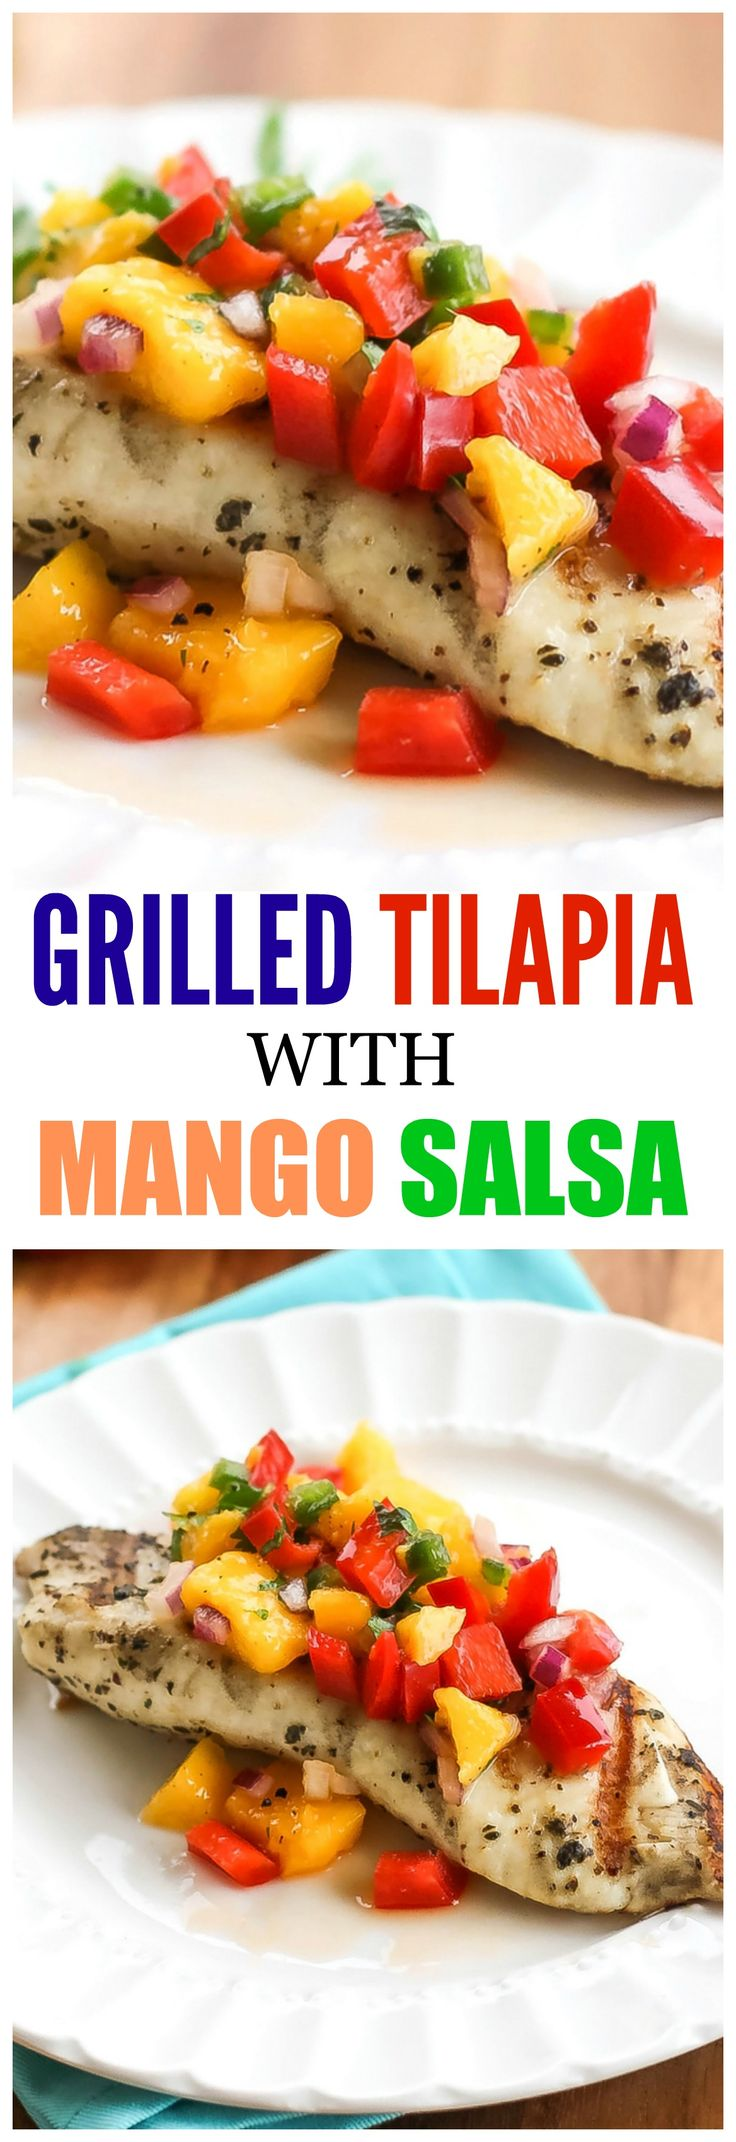 Grilled Tilapia with Mango Salsa - fresh, clean, and healthy. the-girl-who-ate-everything.com